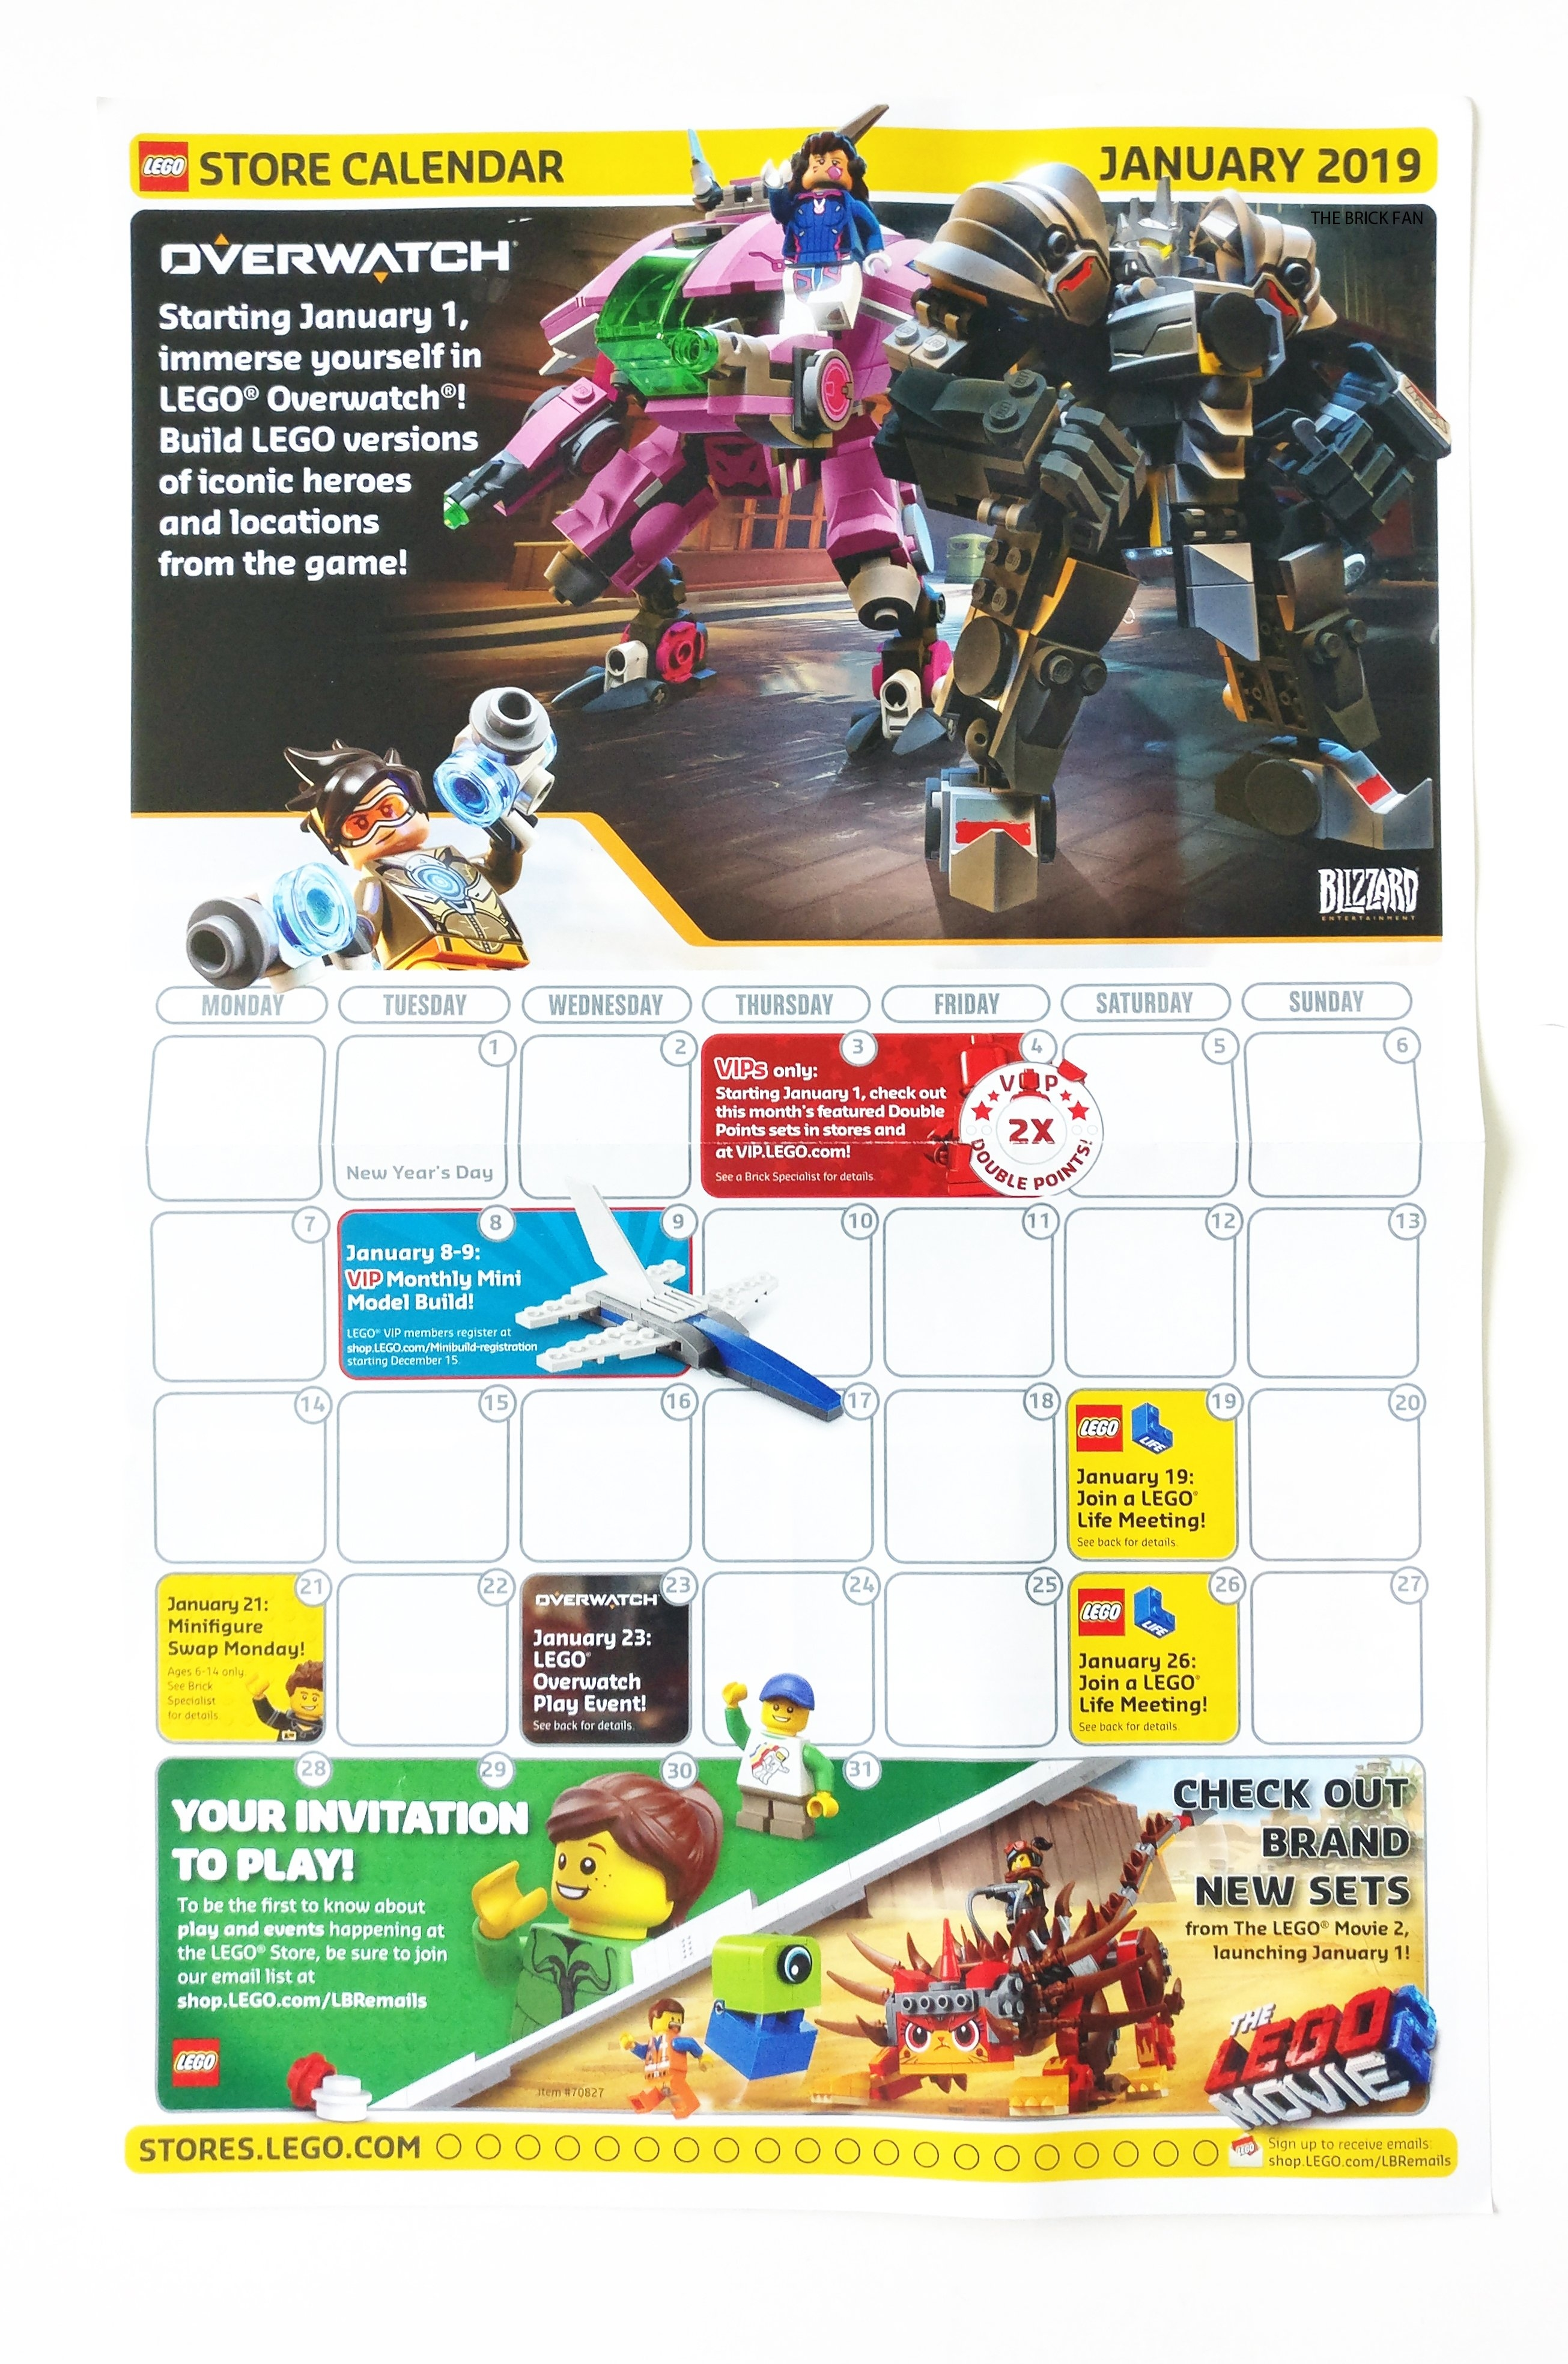 Lego January 2019 Store Calendar Promotions & Events - The Brick Fan Calendar 2019 Store